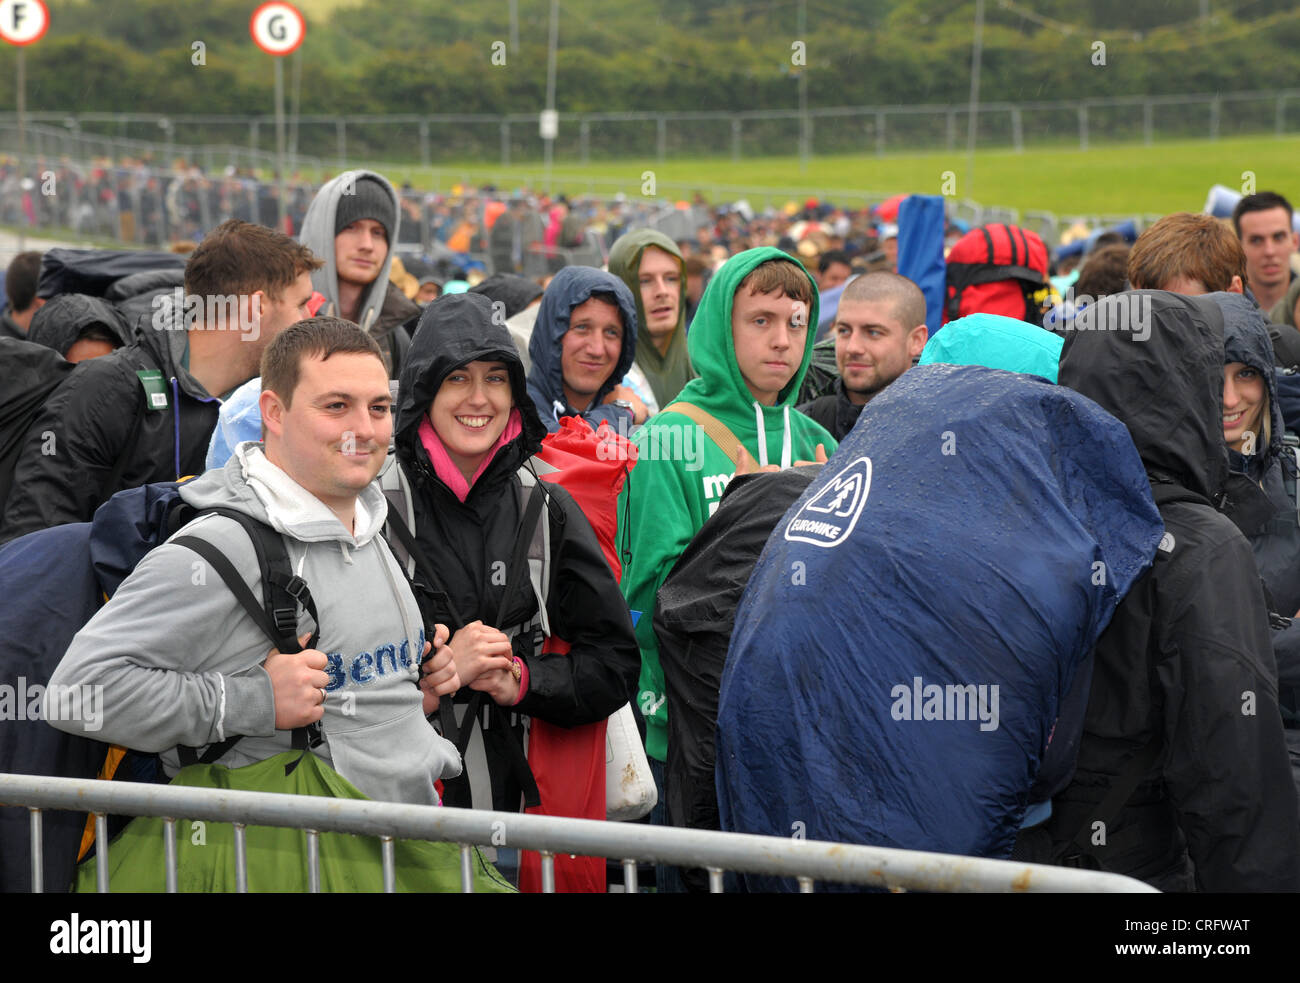 Isle of Wight, England, June 21 2012. Heavy rain and traffic congestion brings chaos to the Isle of Wight festival Stock Photo